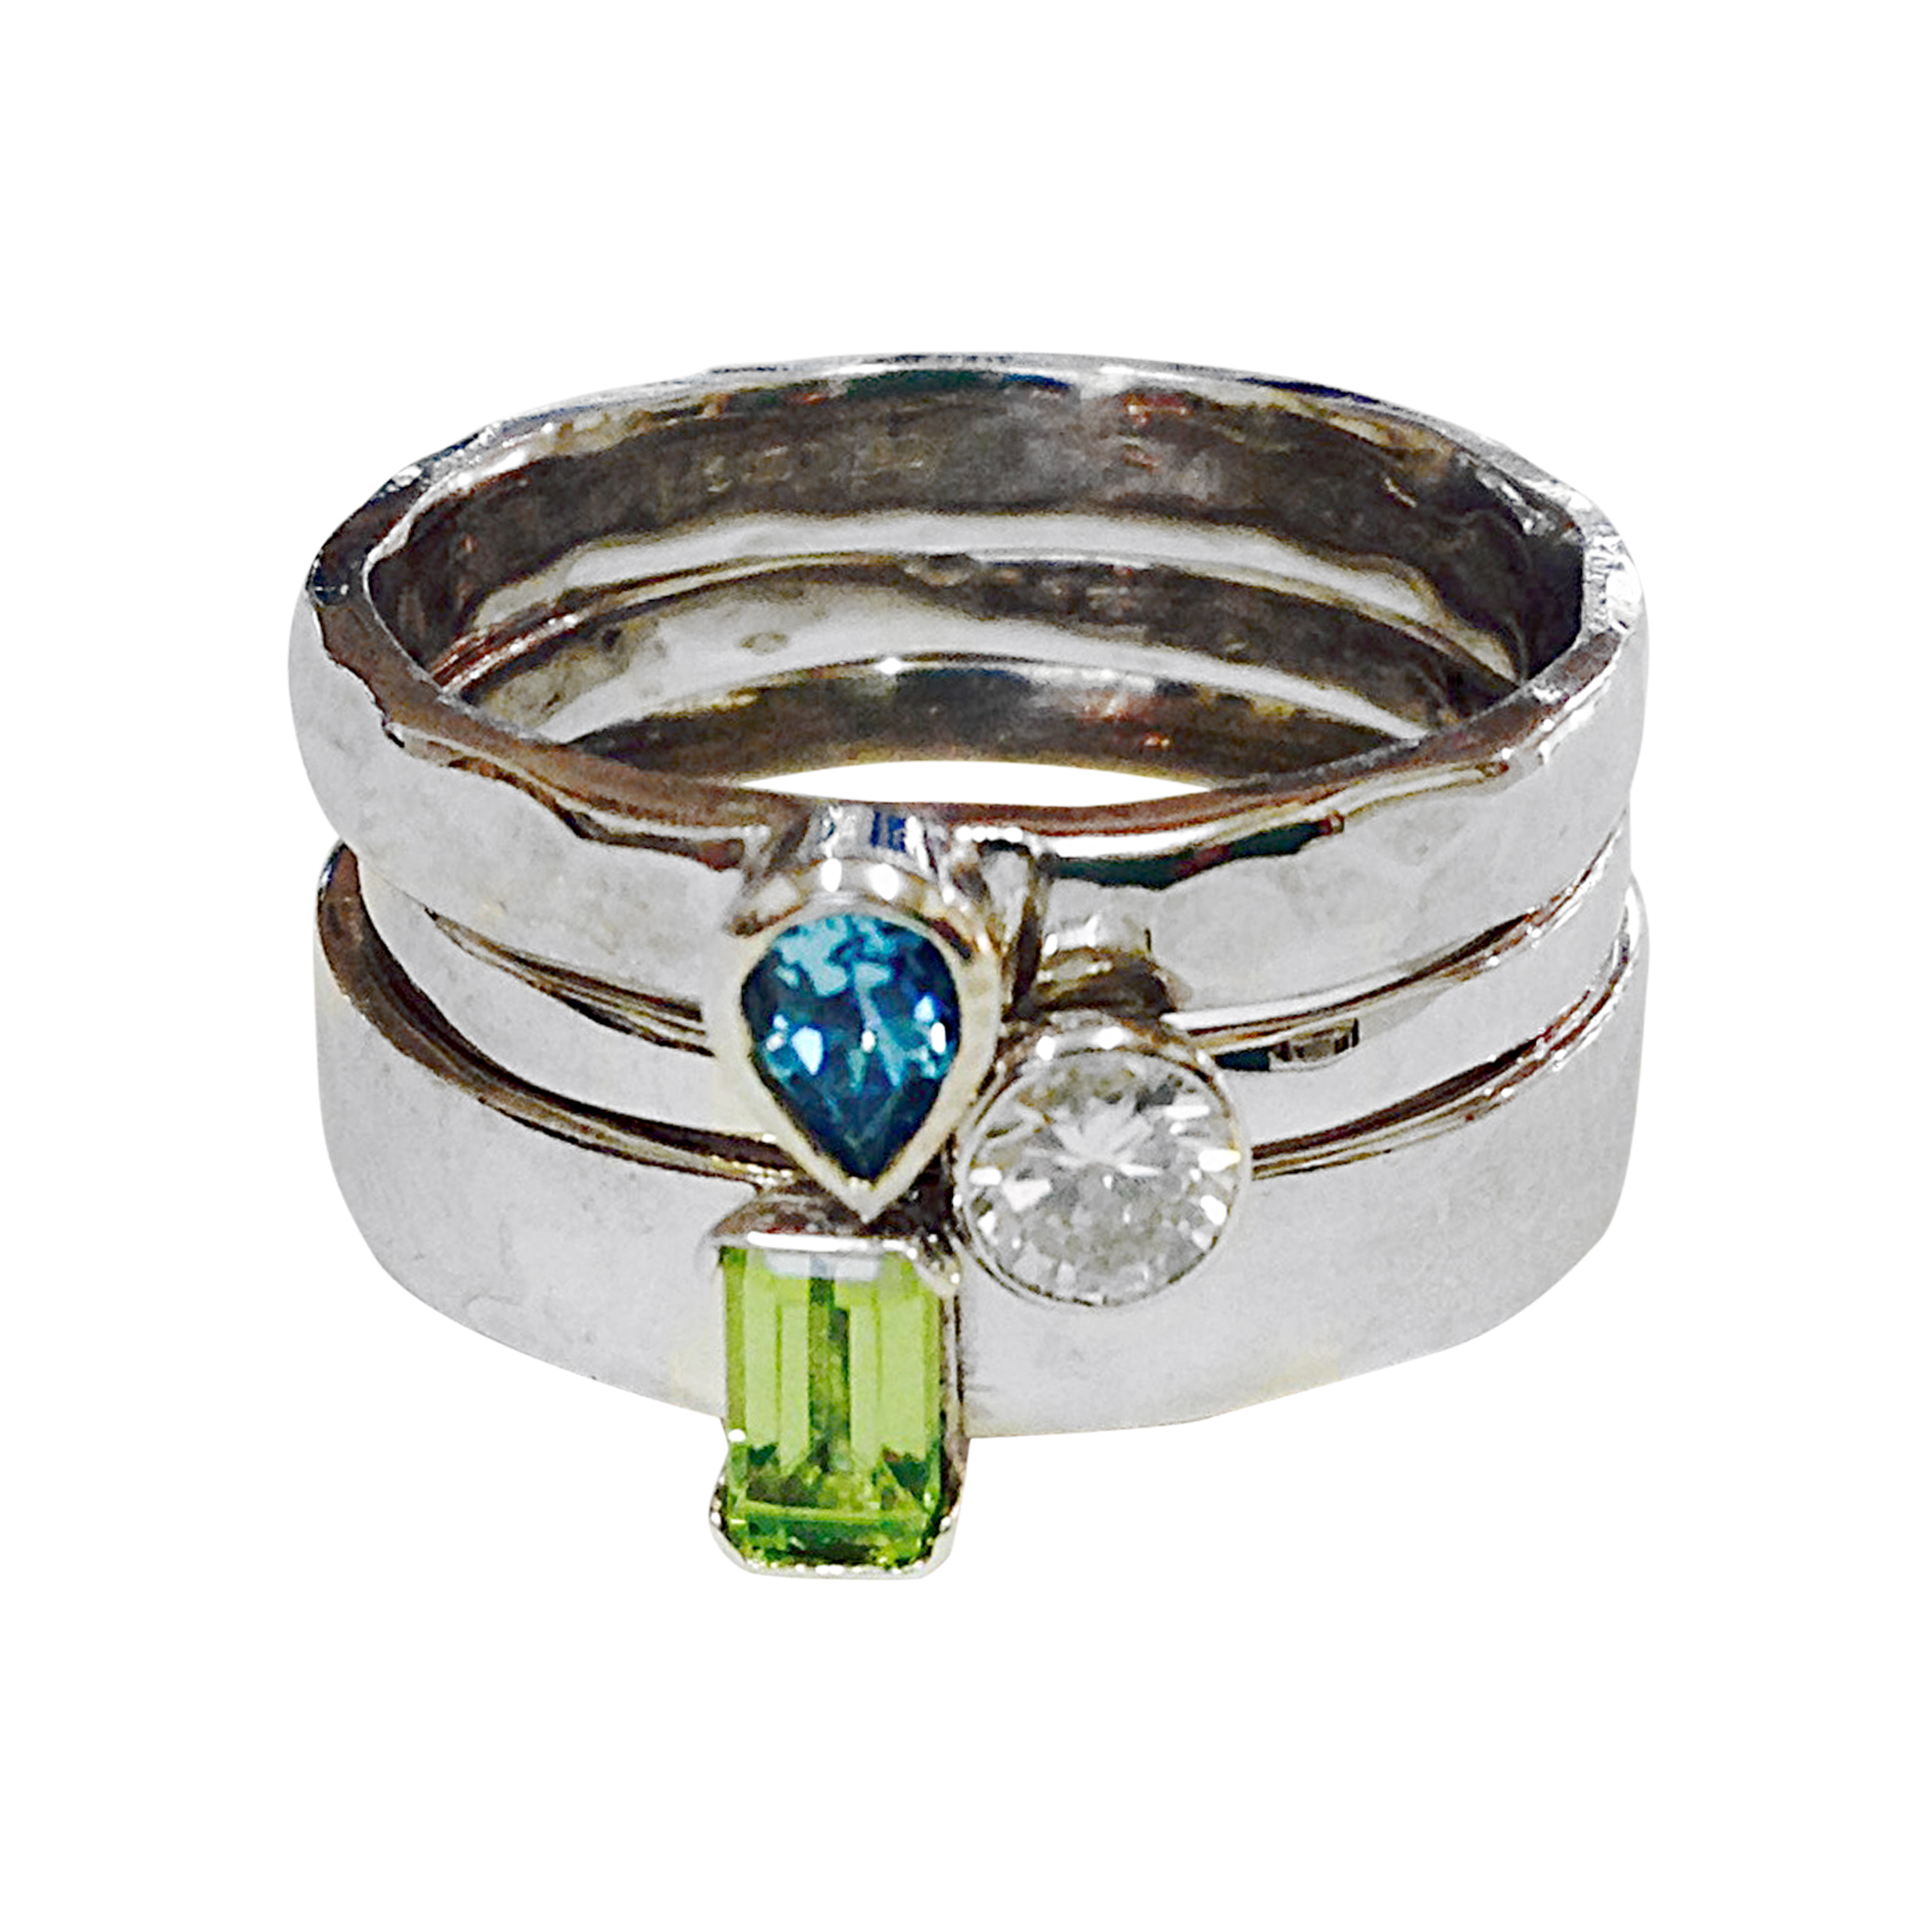 Colette Hazlewood - white gold, topaz, peridot and diamond stacking rings